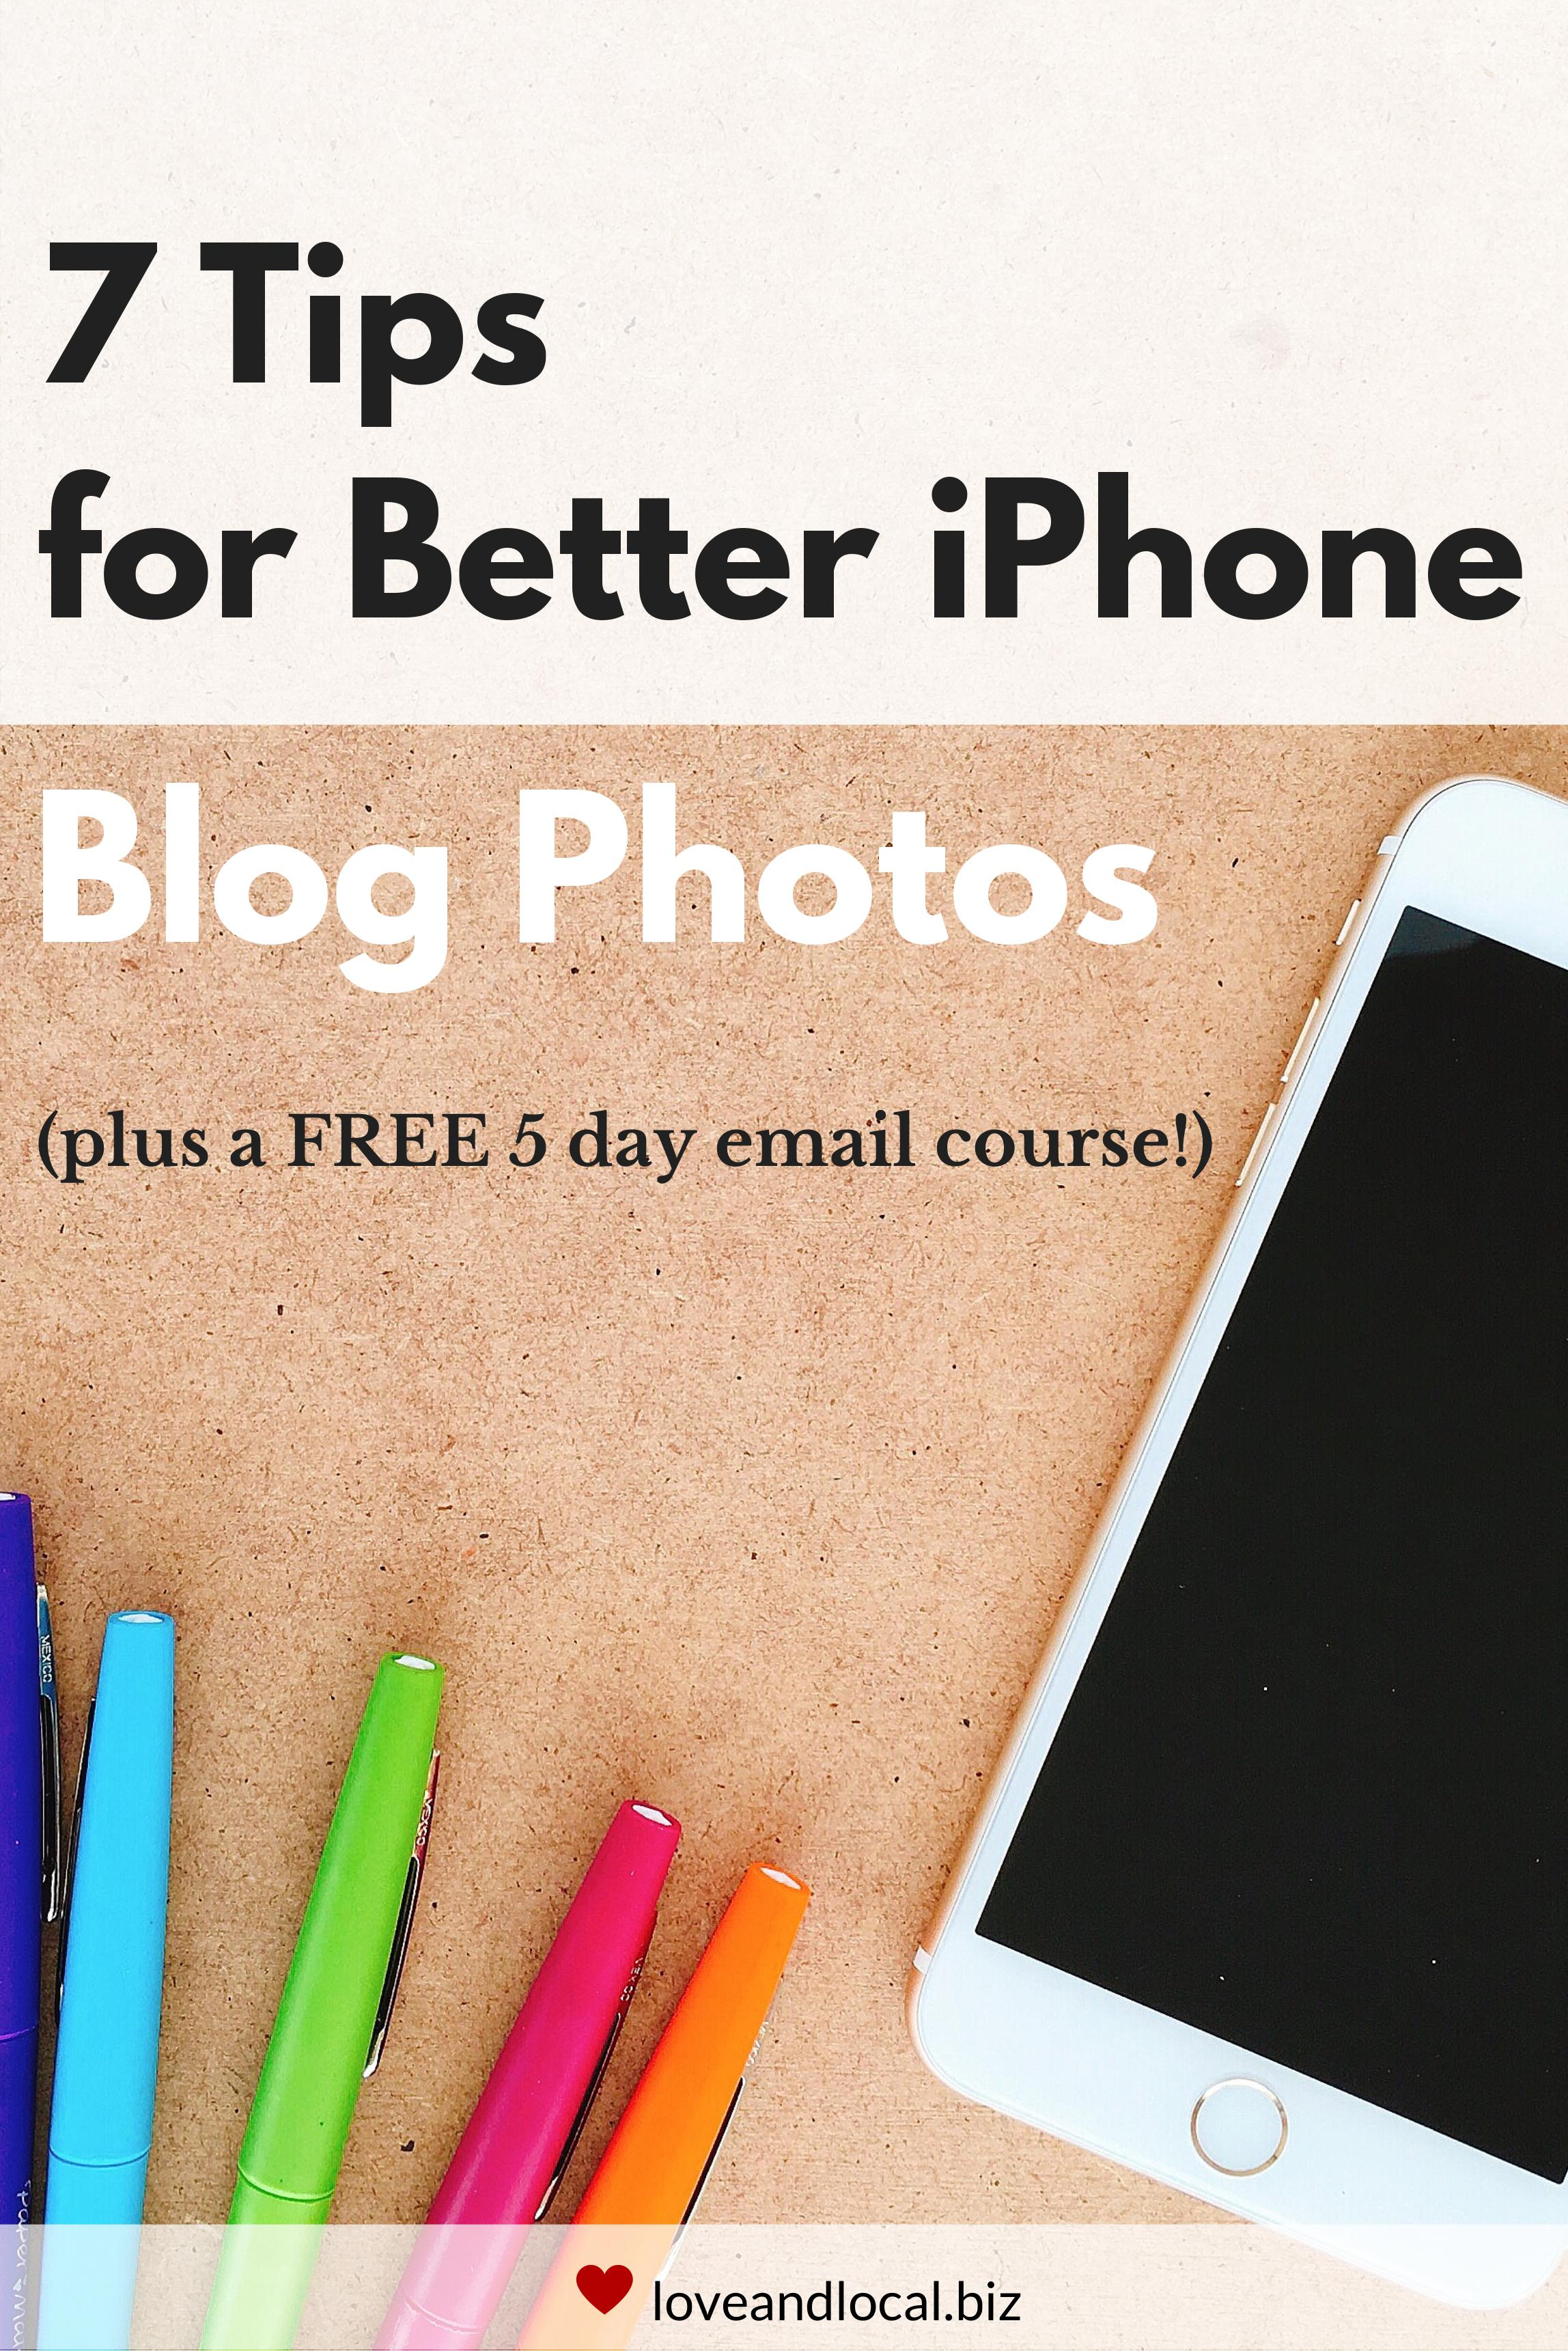 Learn how to take great blog photos with your iPhone with these 7 actionable tips plus a free 5 day email course to really take your iPhoneography to the next level! | via Love and Local Business | loveandlocal.biz